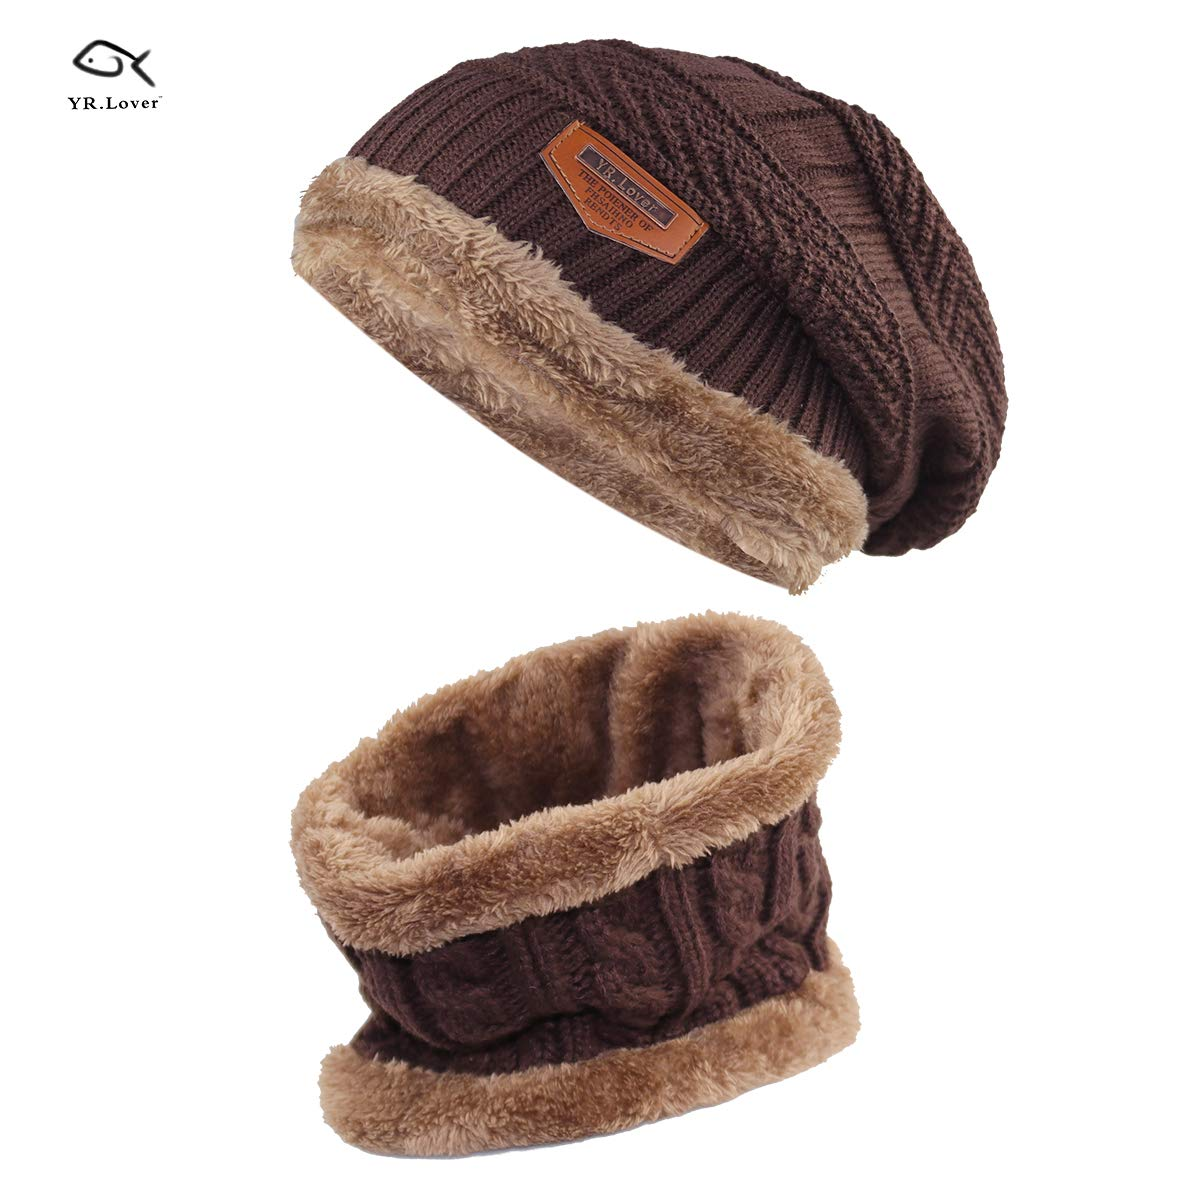 Kids Winter Warm Hat Scarf Knitted Hat with Soft Fleece Lined Beanie Cap.YR.Lover